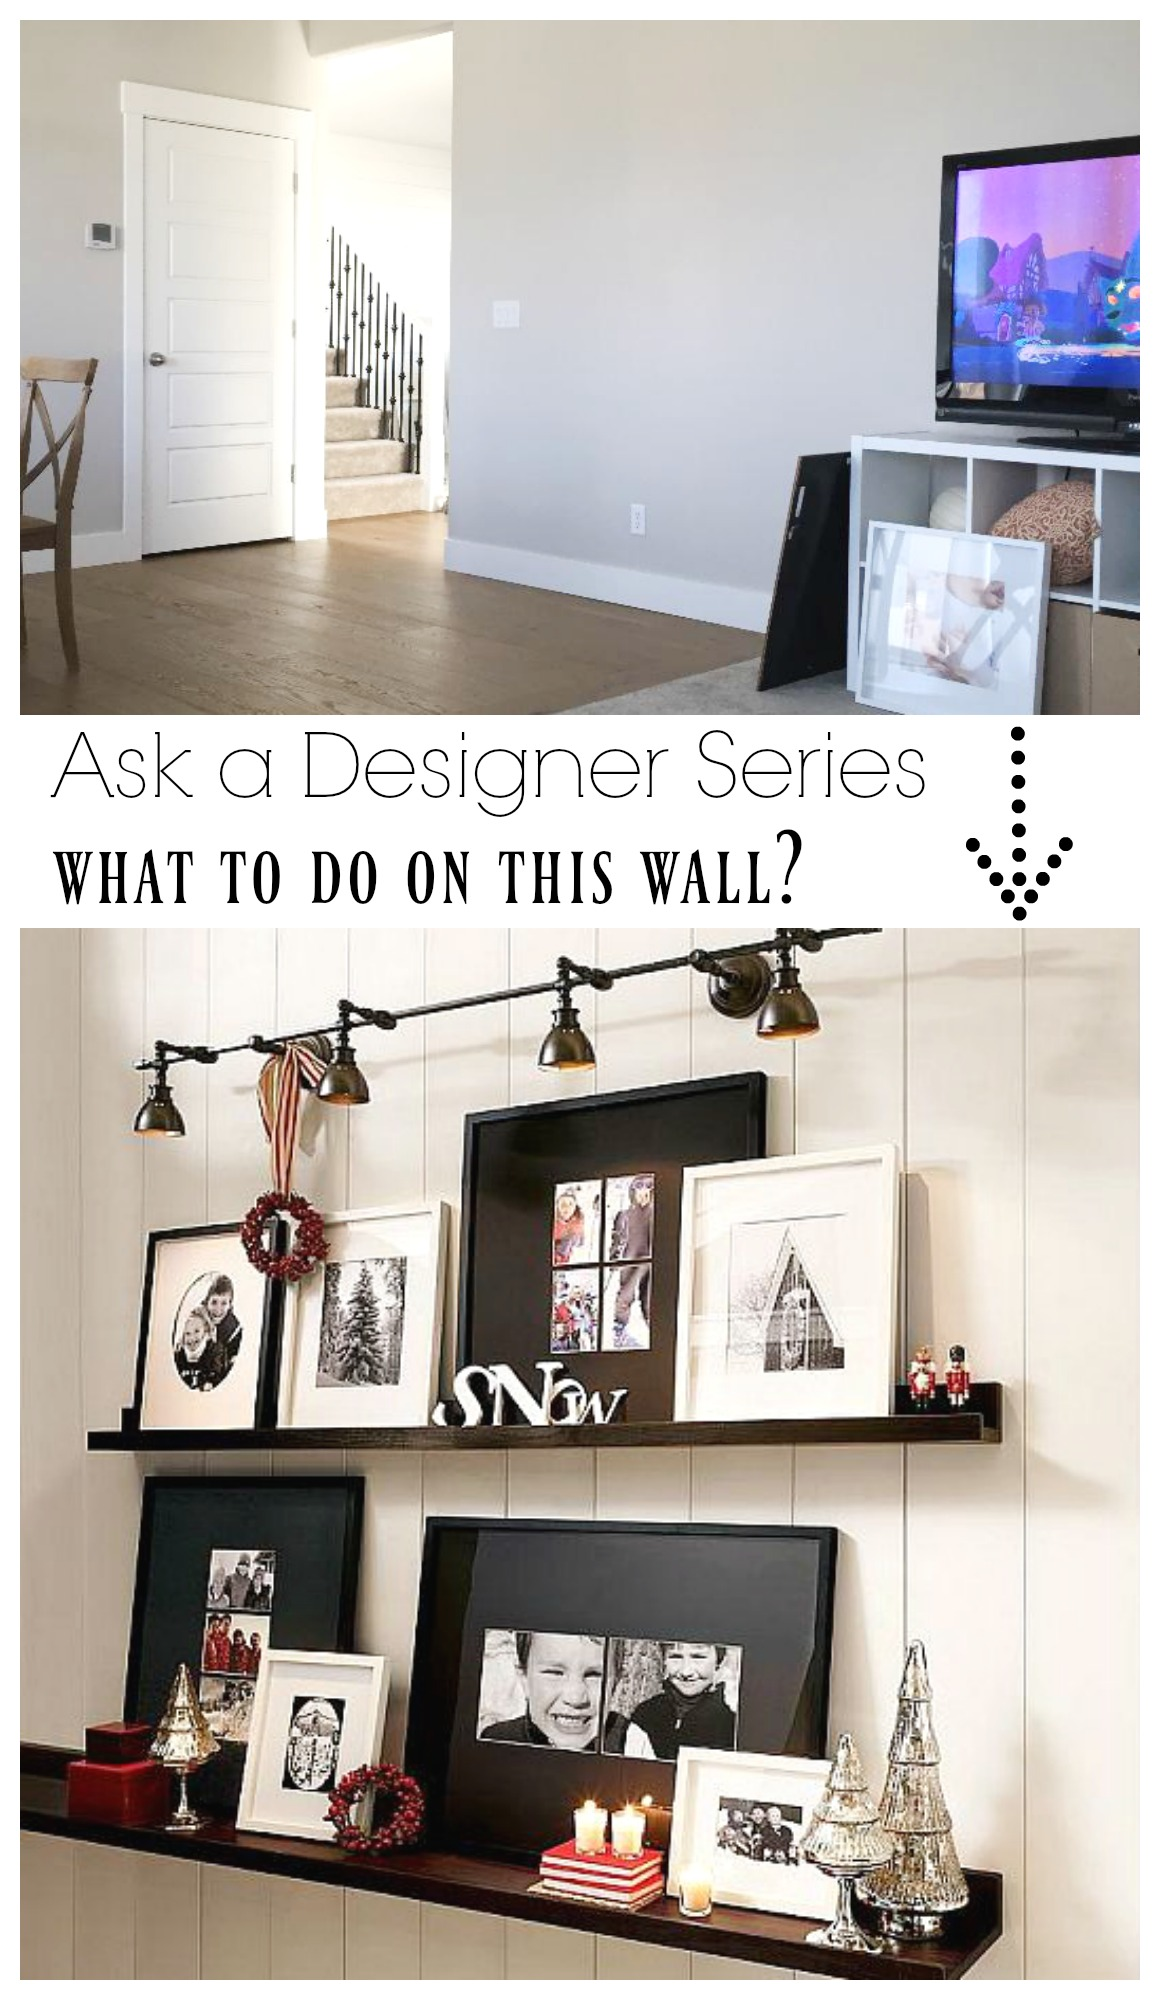 Ask a Designer Series- Idea of Wall of Large Floating Shevles